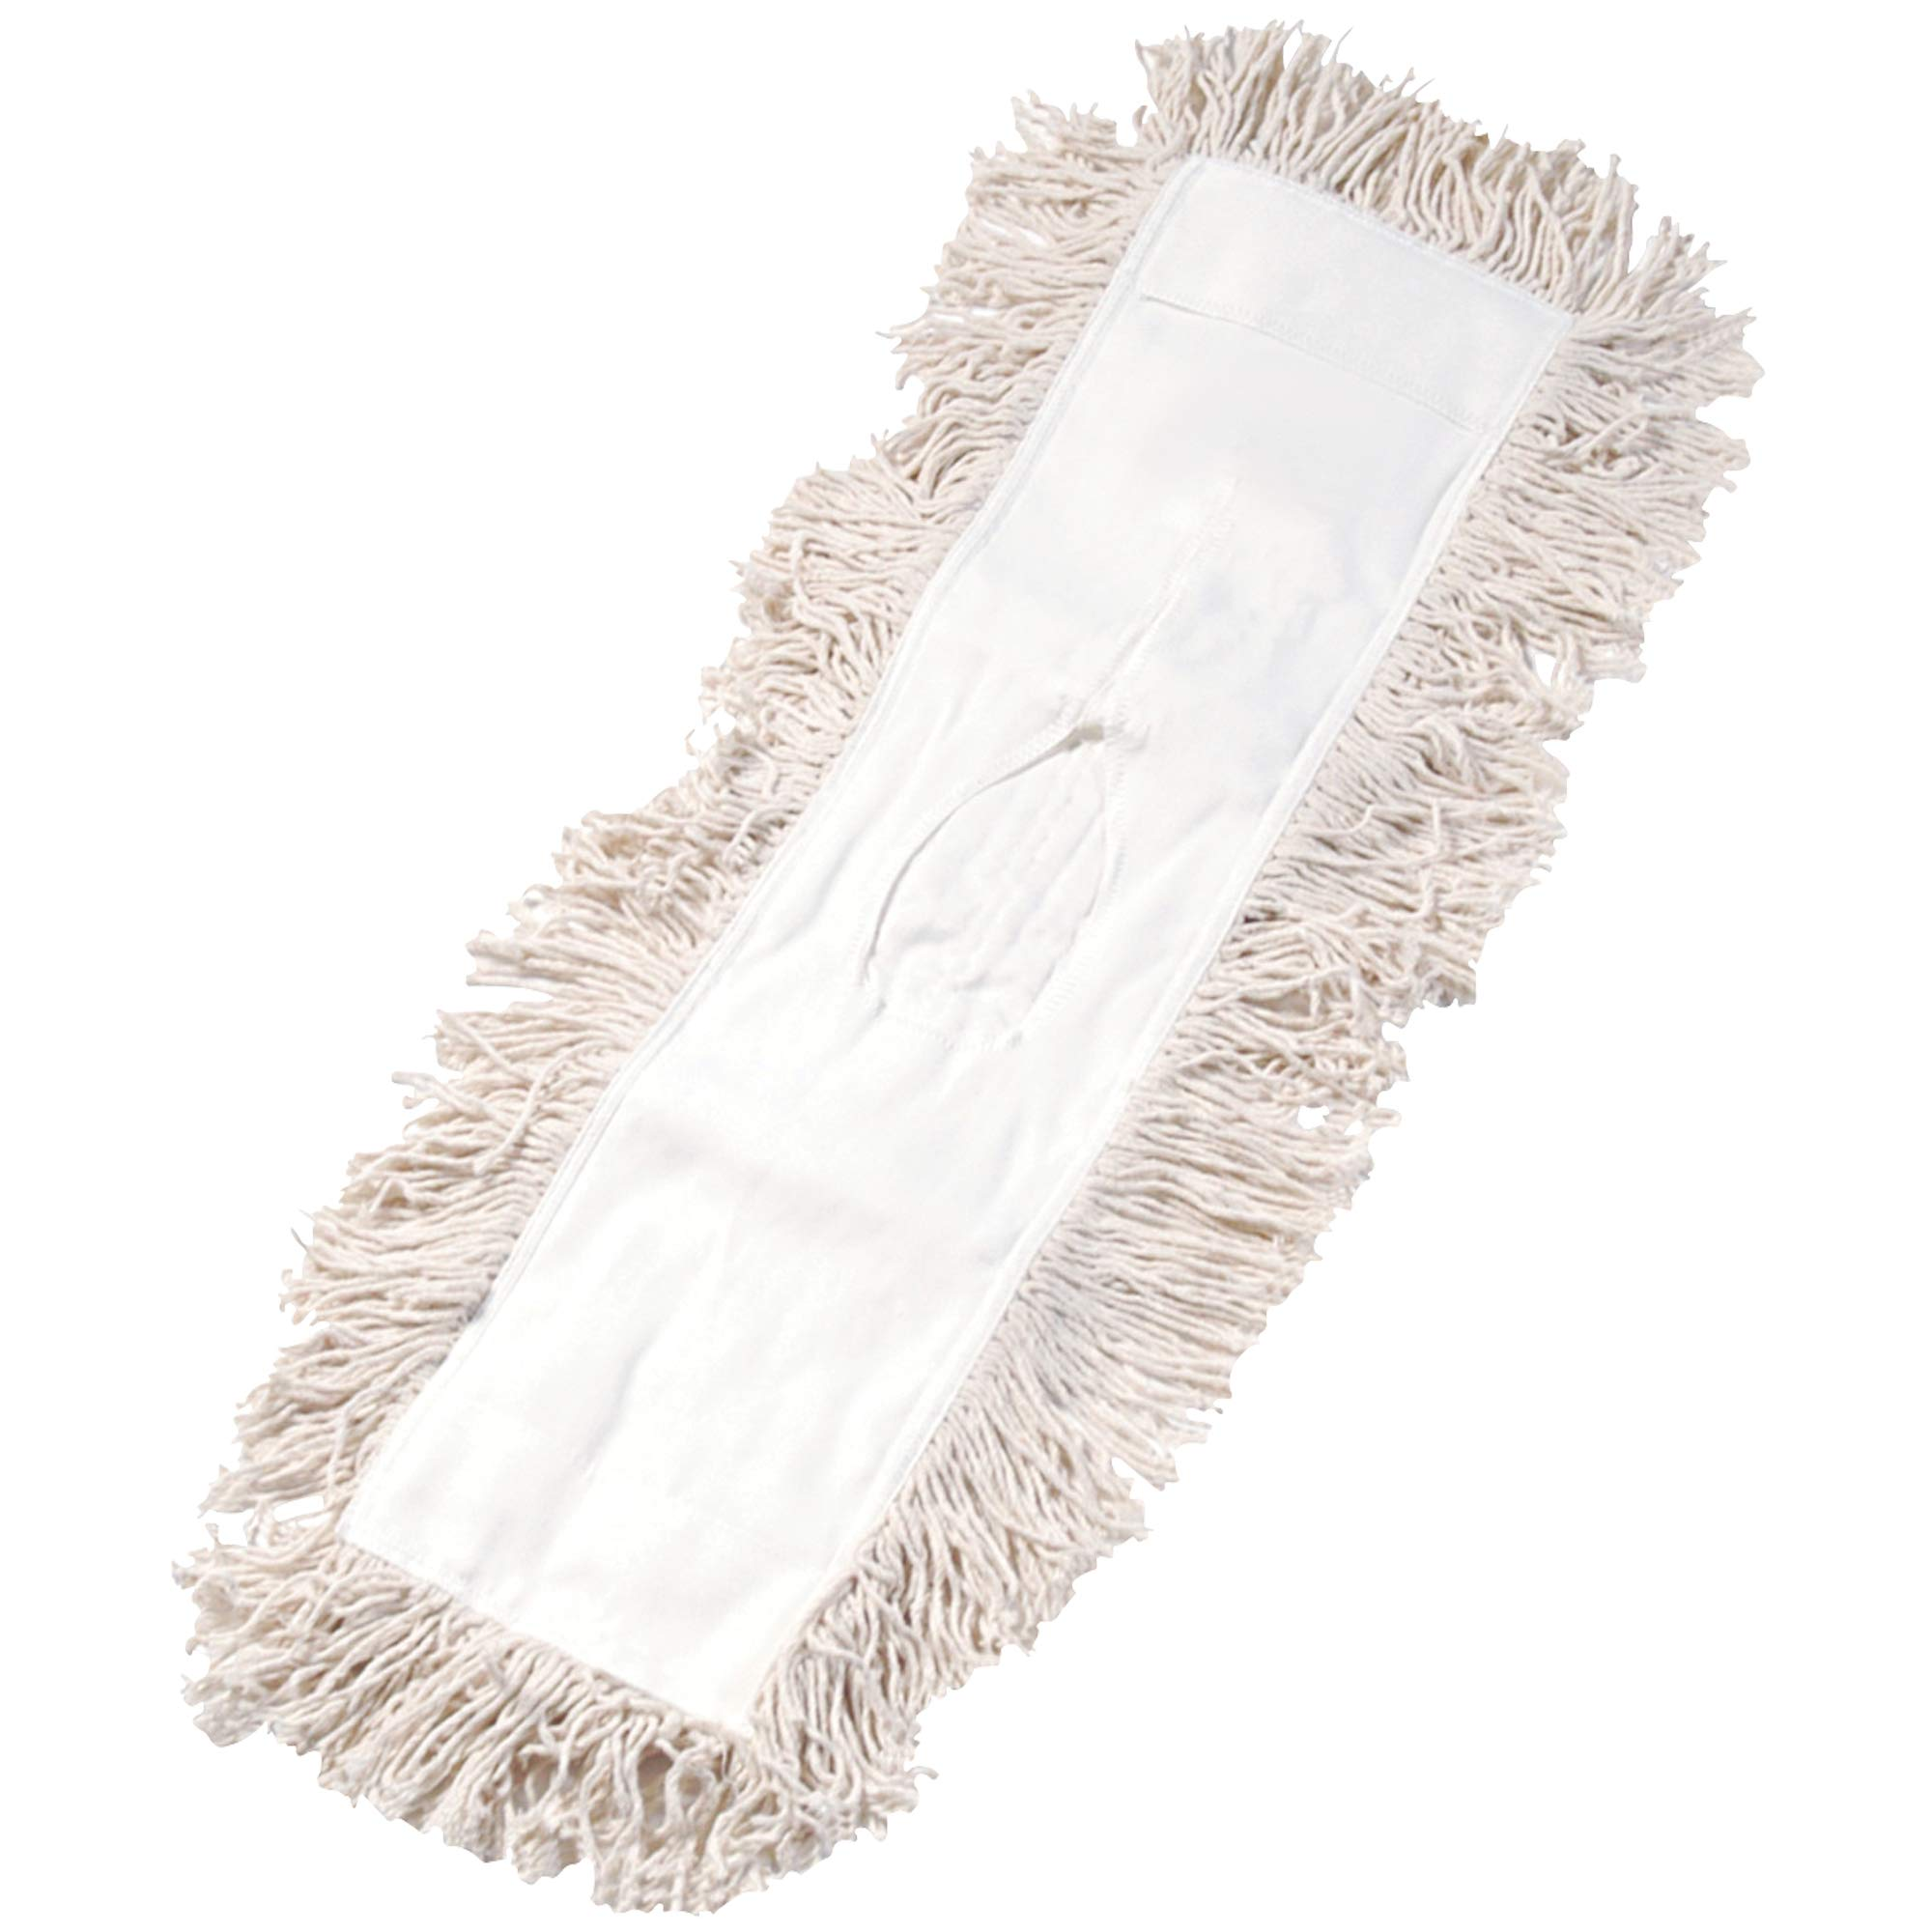 Economy Cut-End Dust Mop Head, 24'', White, 1/Each by Top Pack Supply